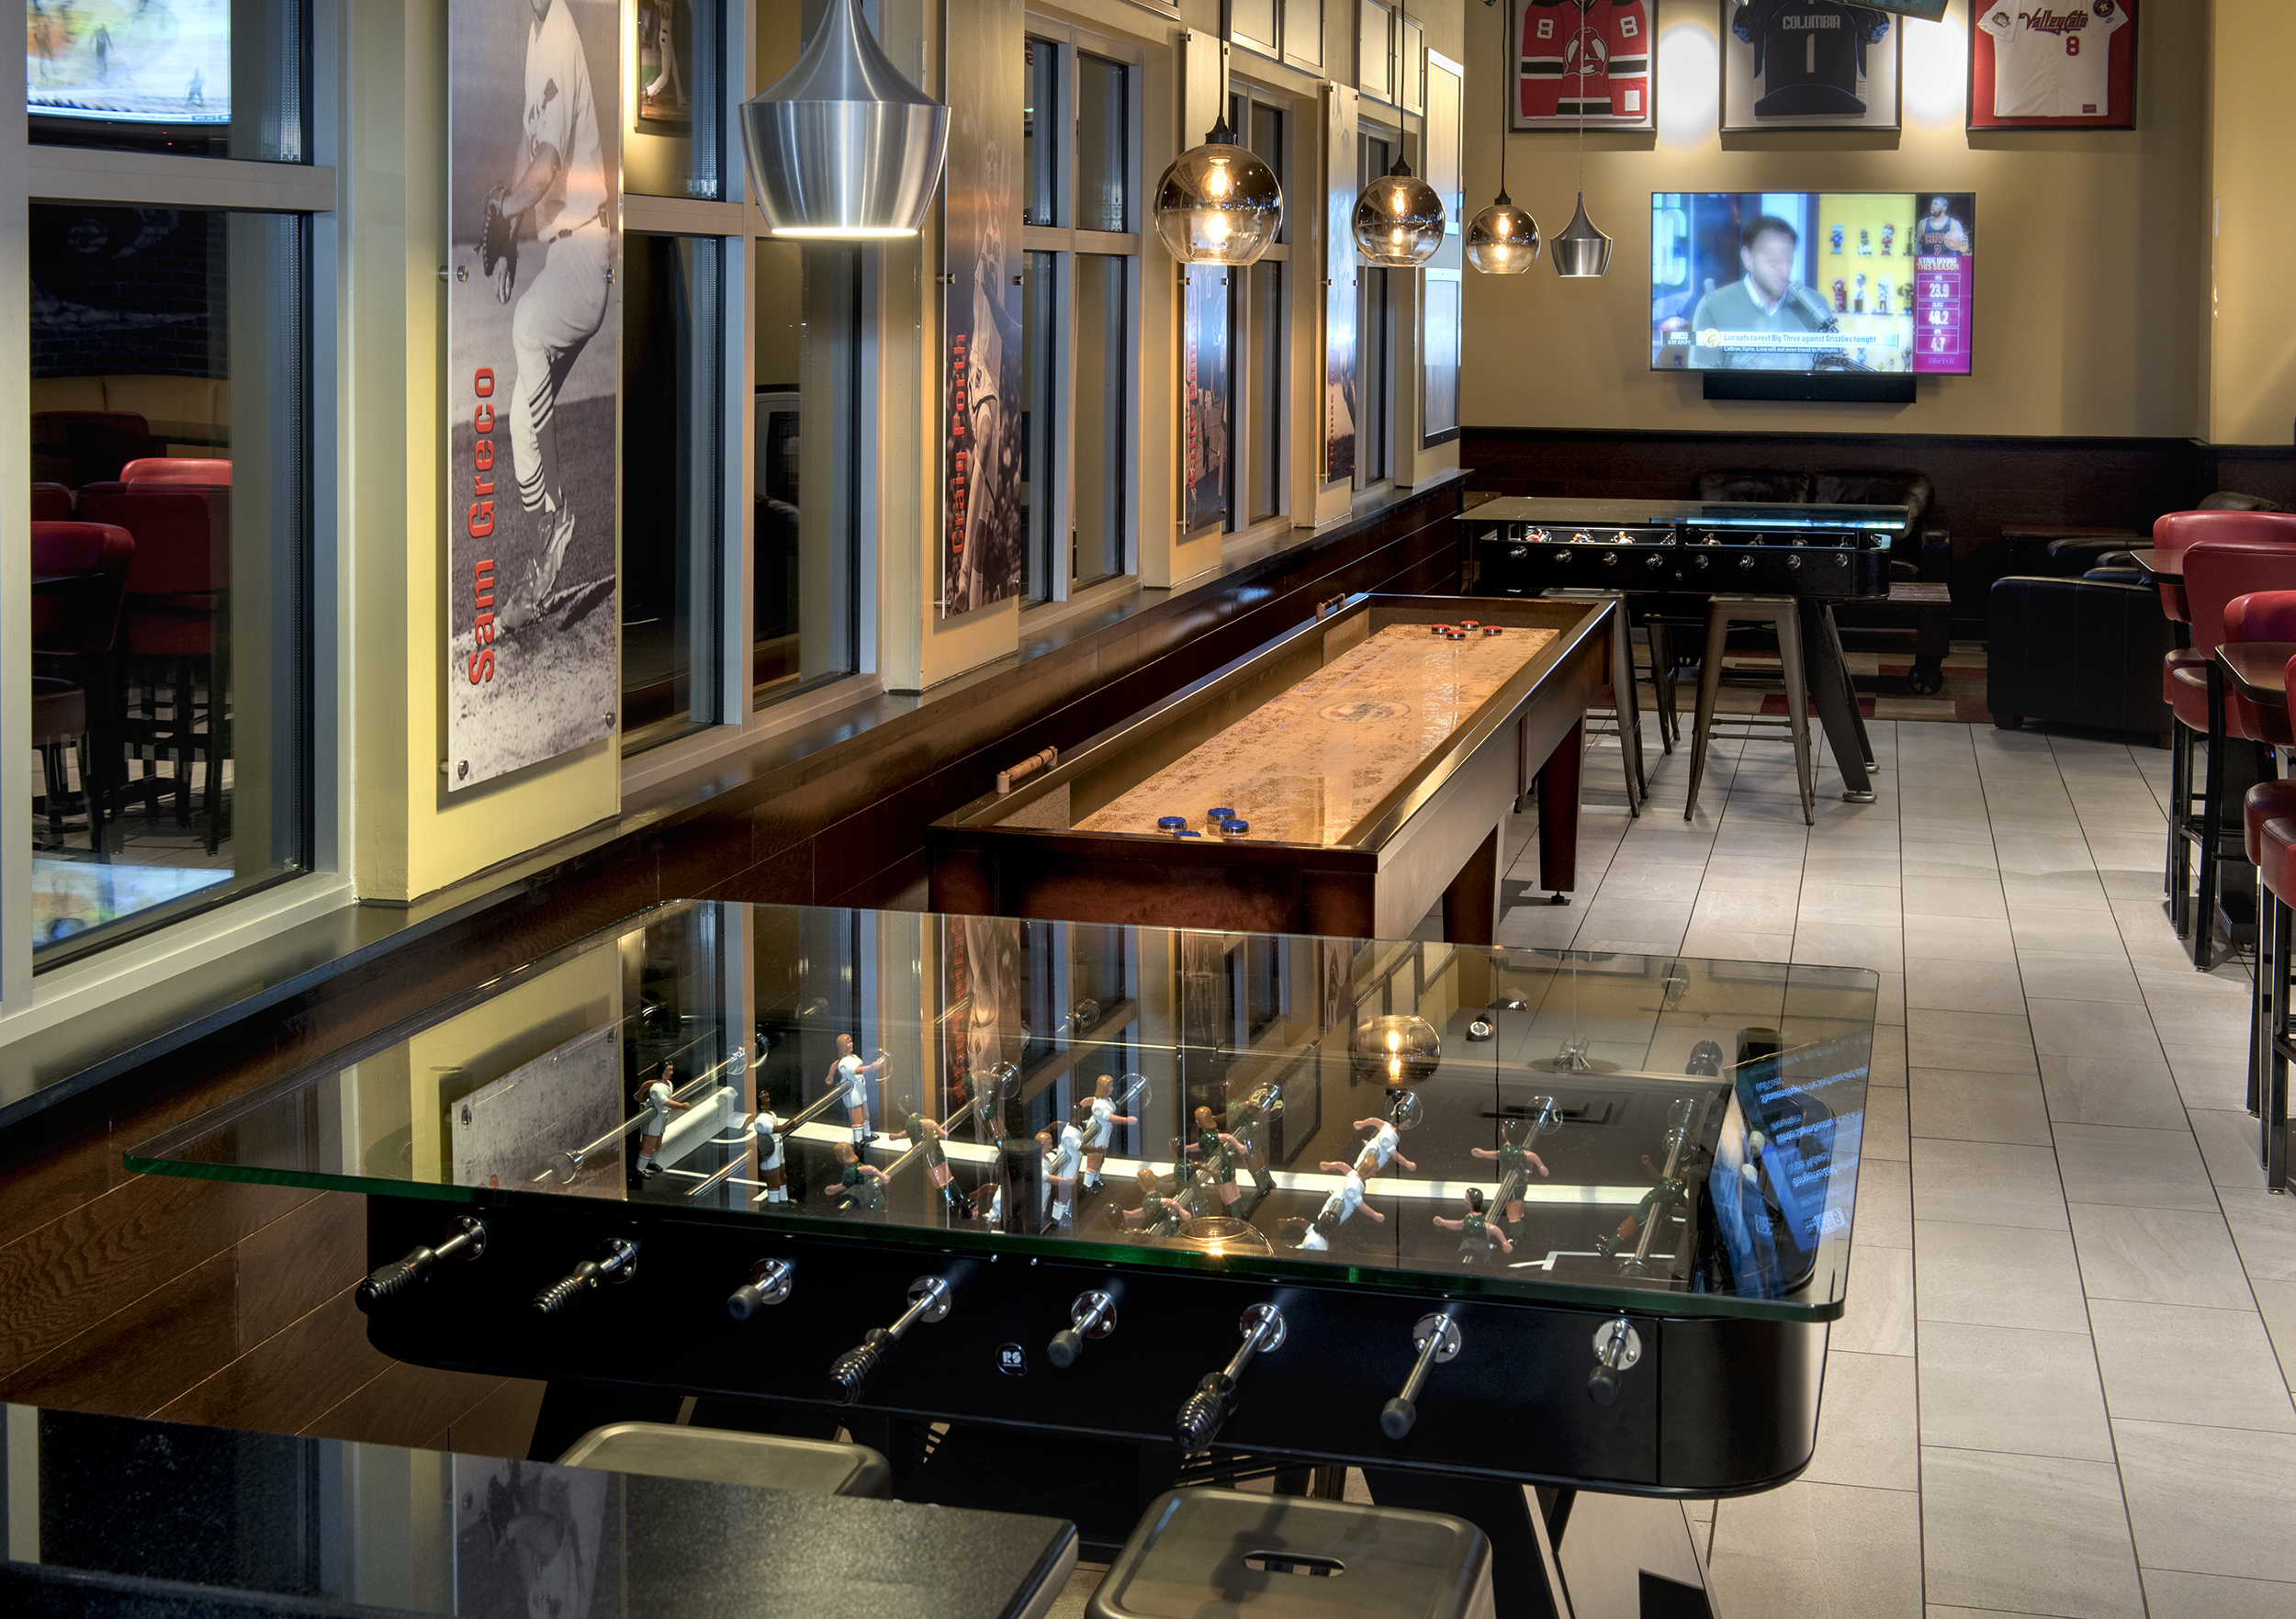 Foosball table and shuffle board